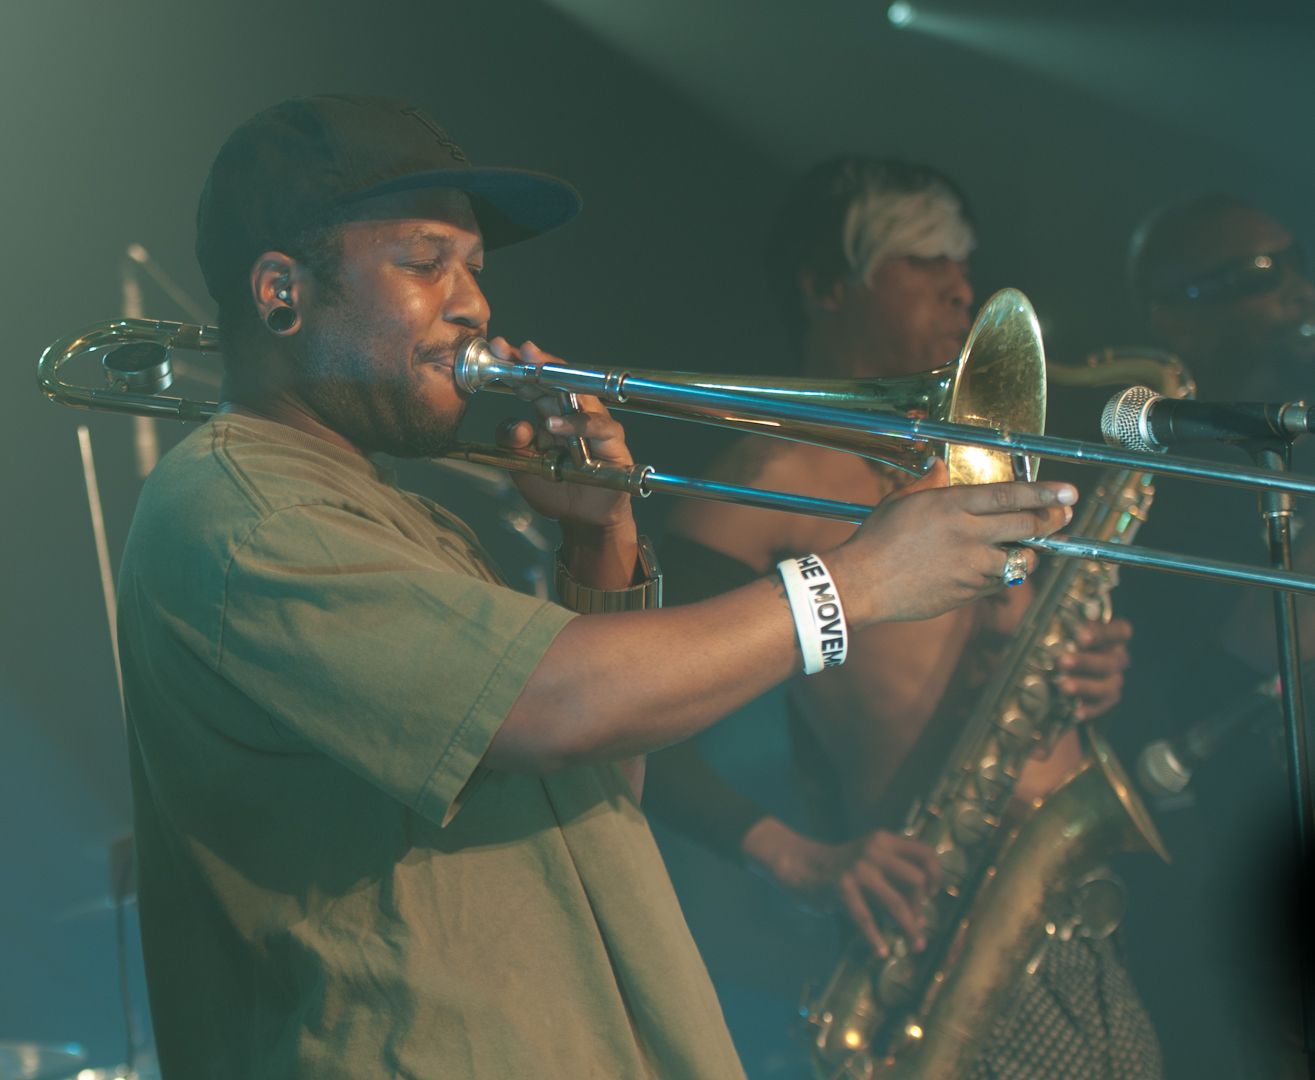 Jay Armant with Fishbone at the Montreal International Jazz Festival 2012